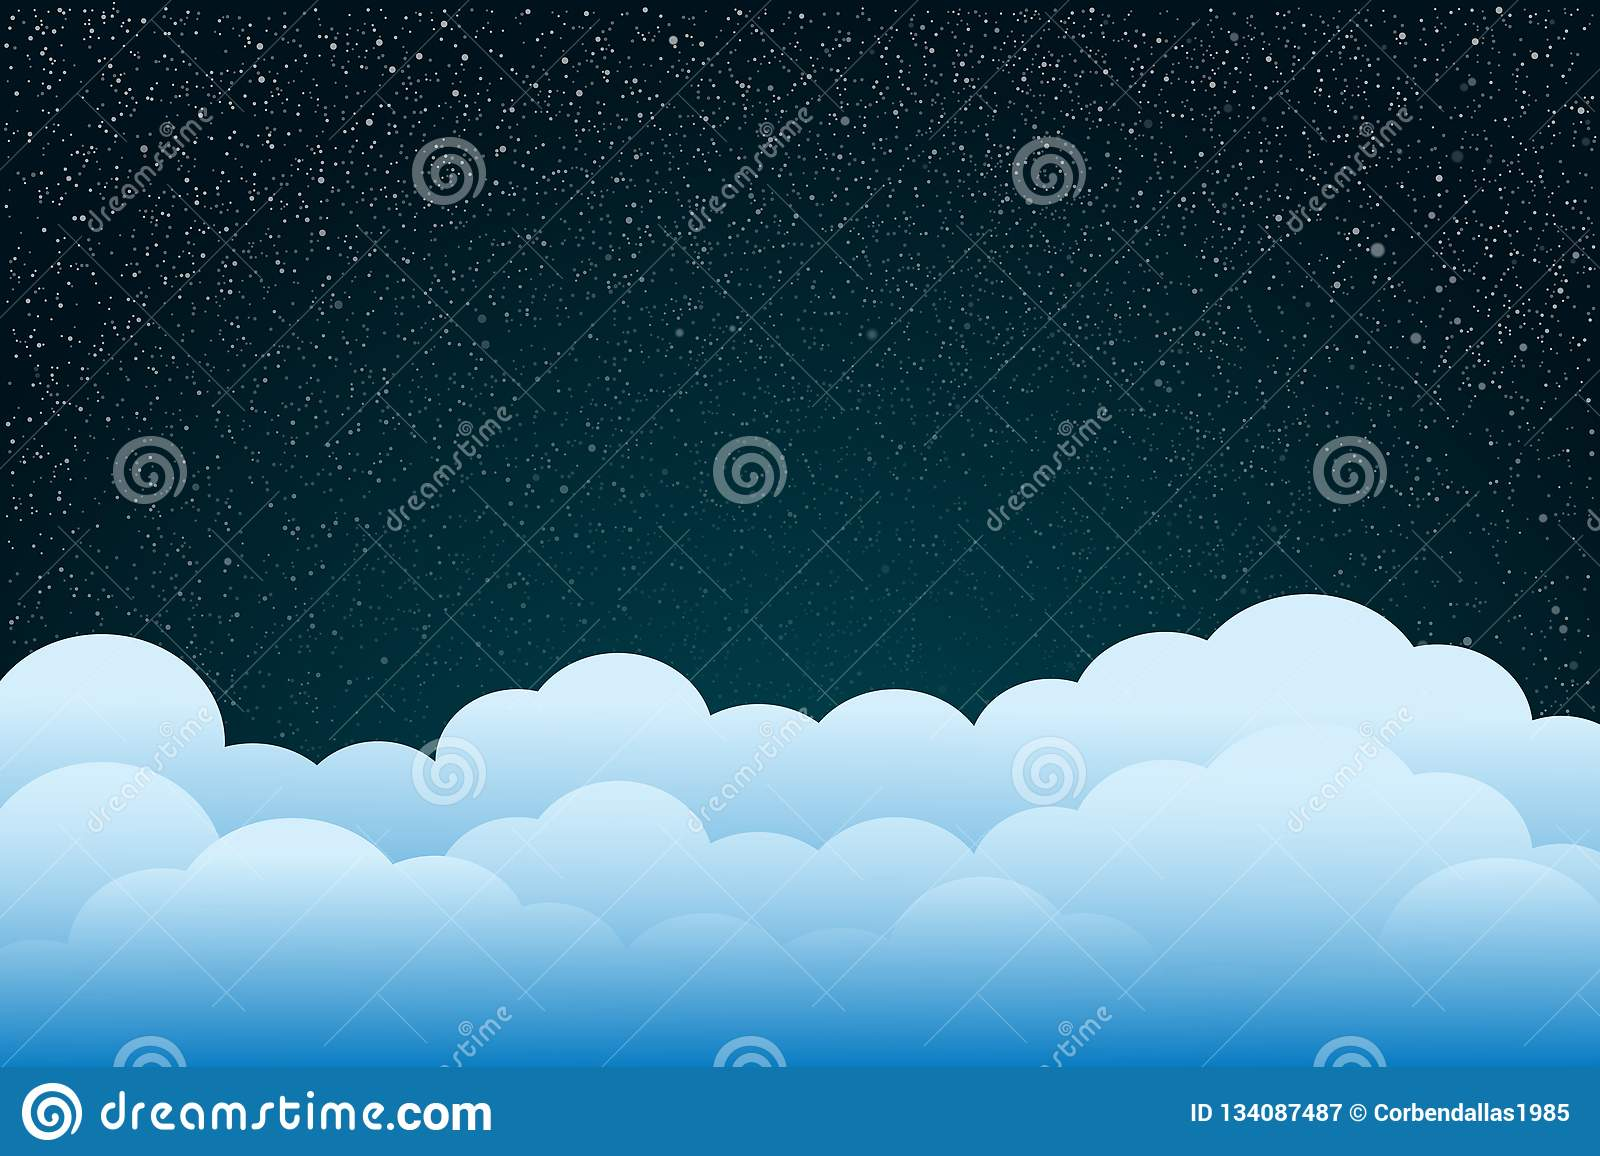 Starry Sky With Blue Clouds Moon Stars Dark Sky Stock Vector Illustration Of Planet Magic 134087487